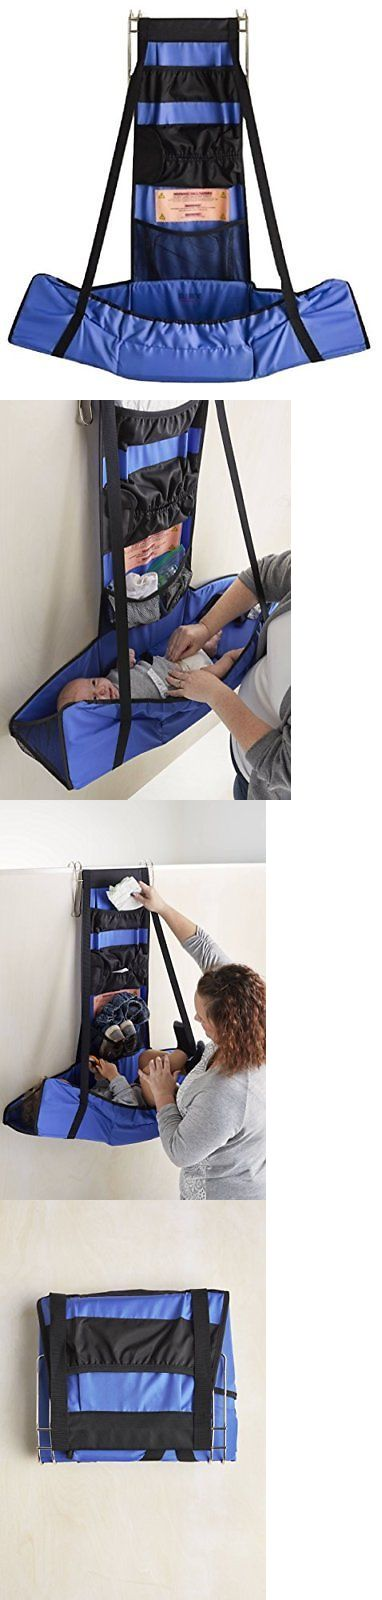 Changing Pads and Covers 66674: Baby Change-N-Go Hanging, Portable Baby Changing Table And On The Go Travel Ch -> BUY IT NOW ONLY: $78.99 on eBay!